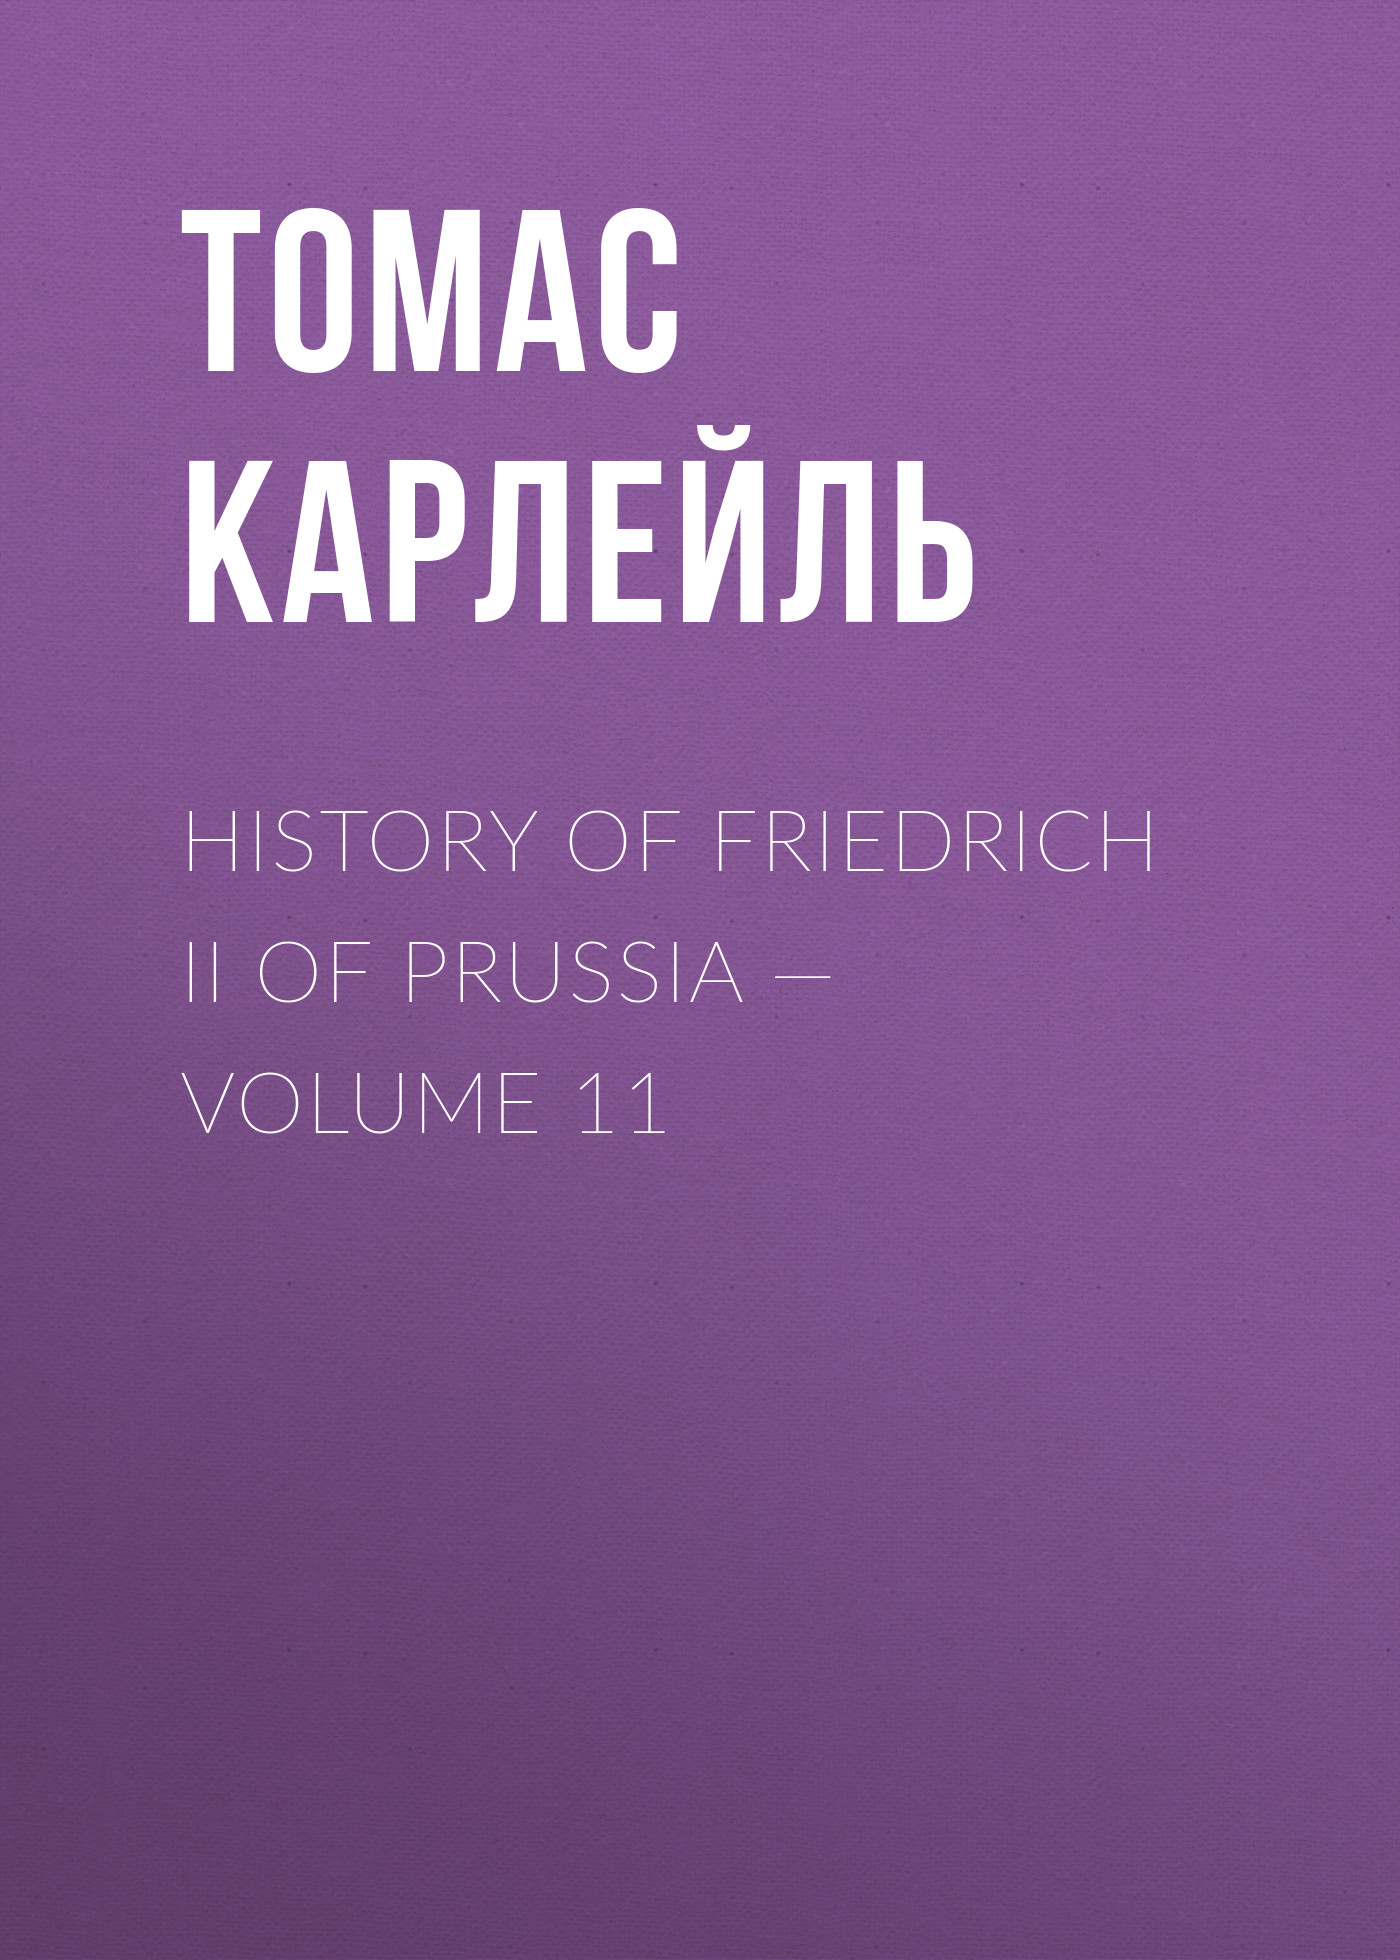 Томас Карлейль History of Friedrich II of Prussia — Volume 11 томас карлейль history of friedrich ii of prussia volume 10